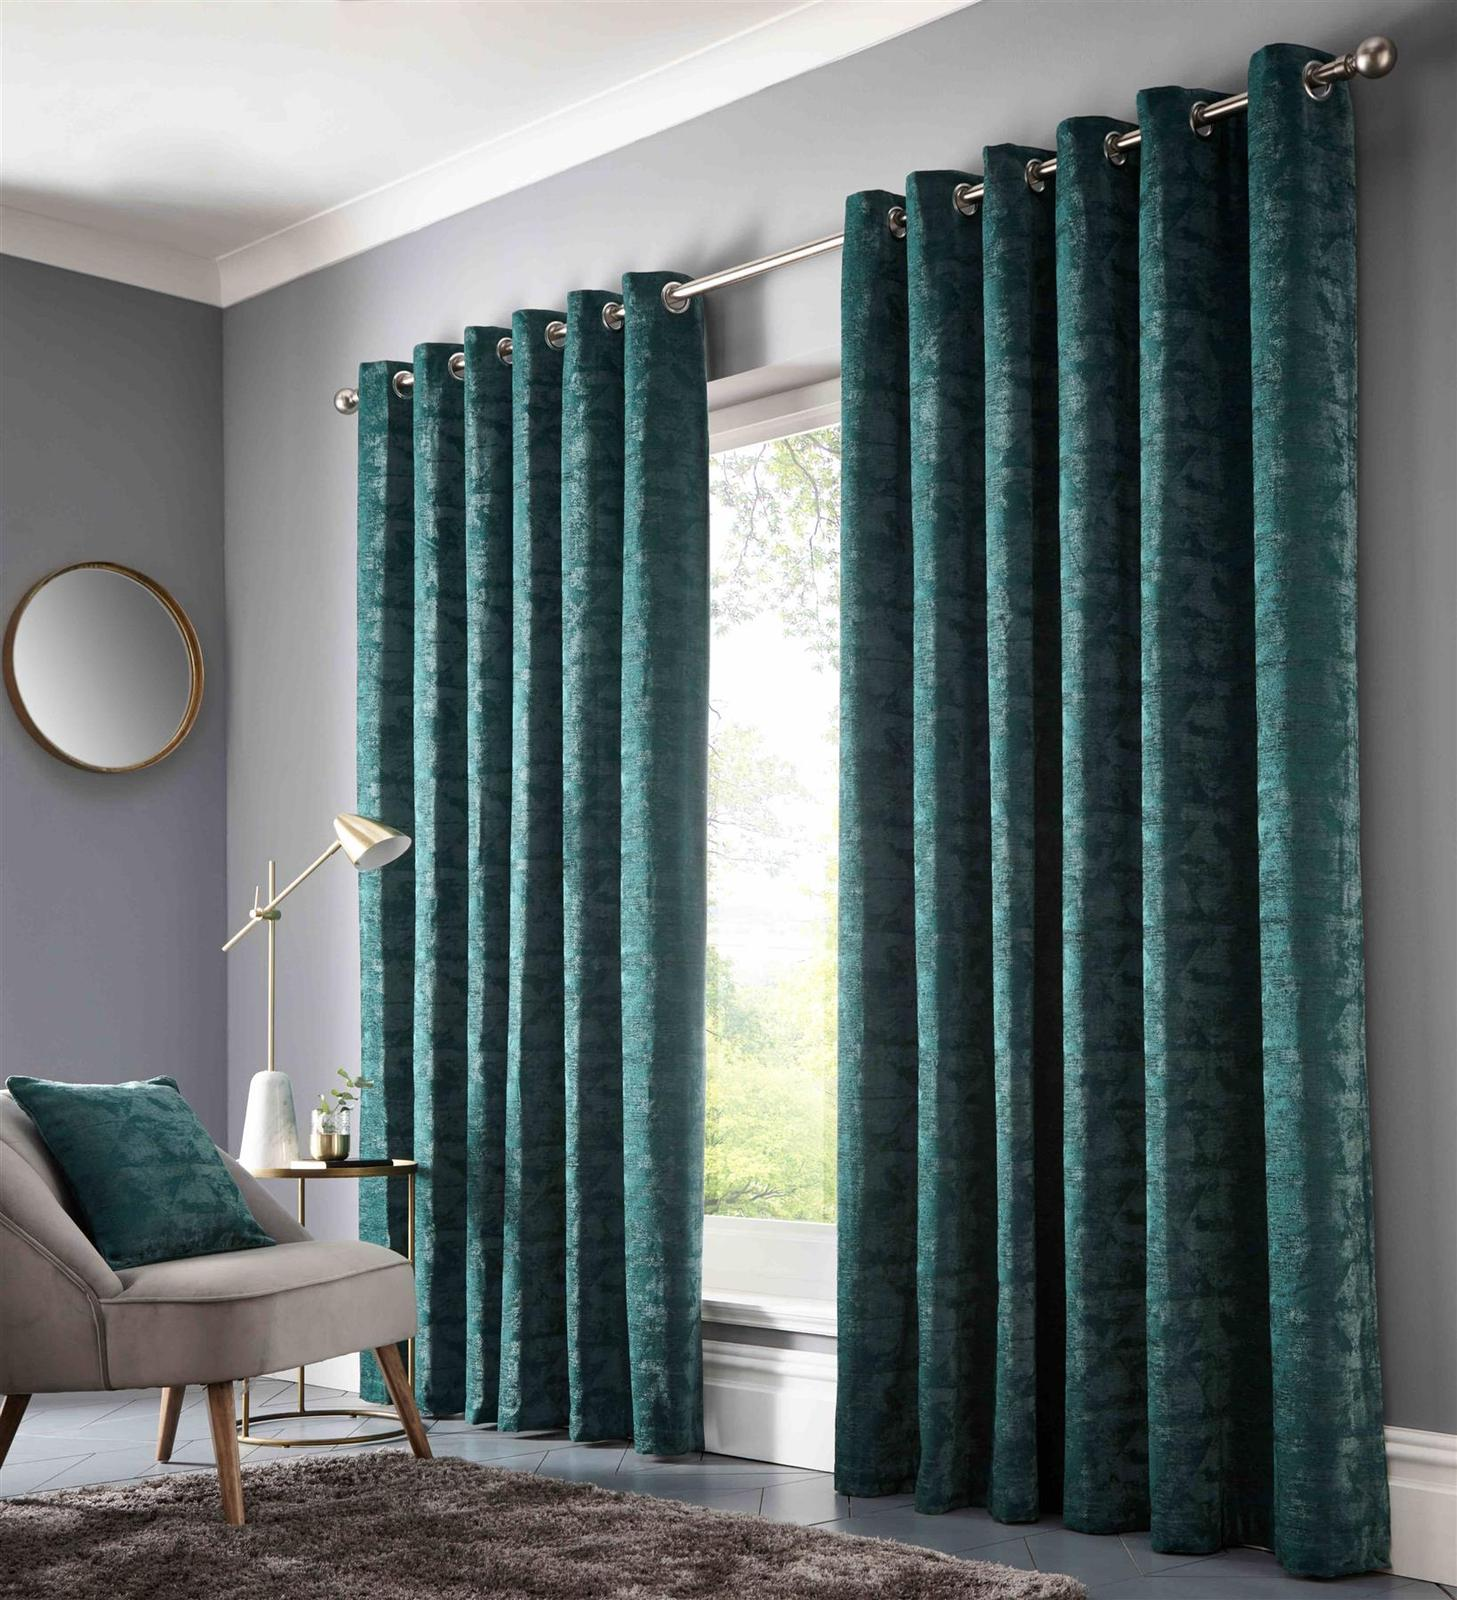 STUDIO G EMERALD GREEN RING TOP CURTAINS – 9 SIZES - $85.64 - $226.27